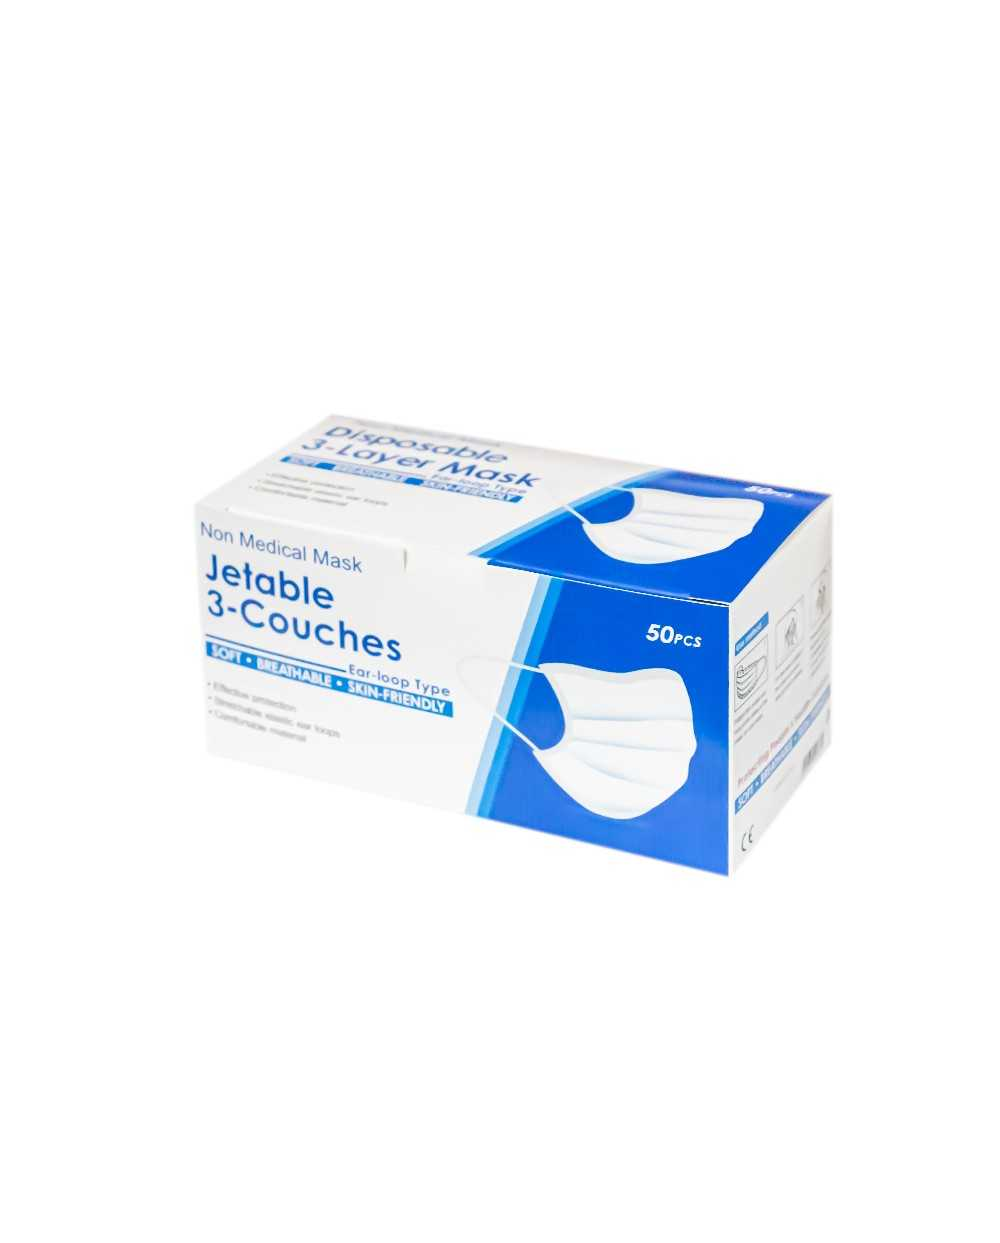 Masque chirurgical 3 couches 50 pcs / Boite